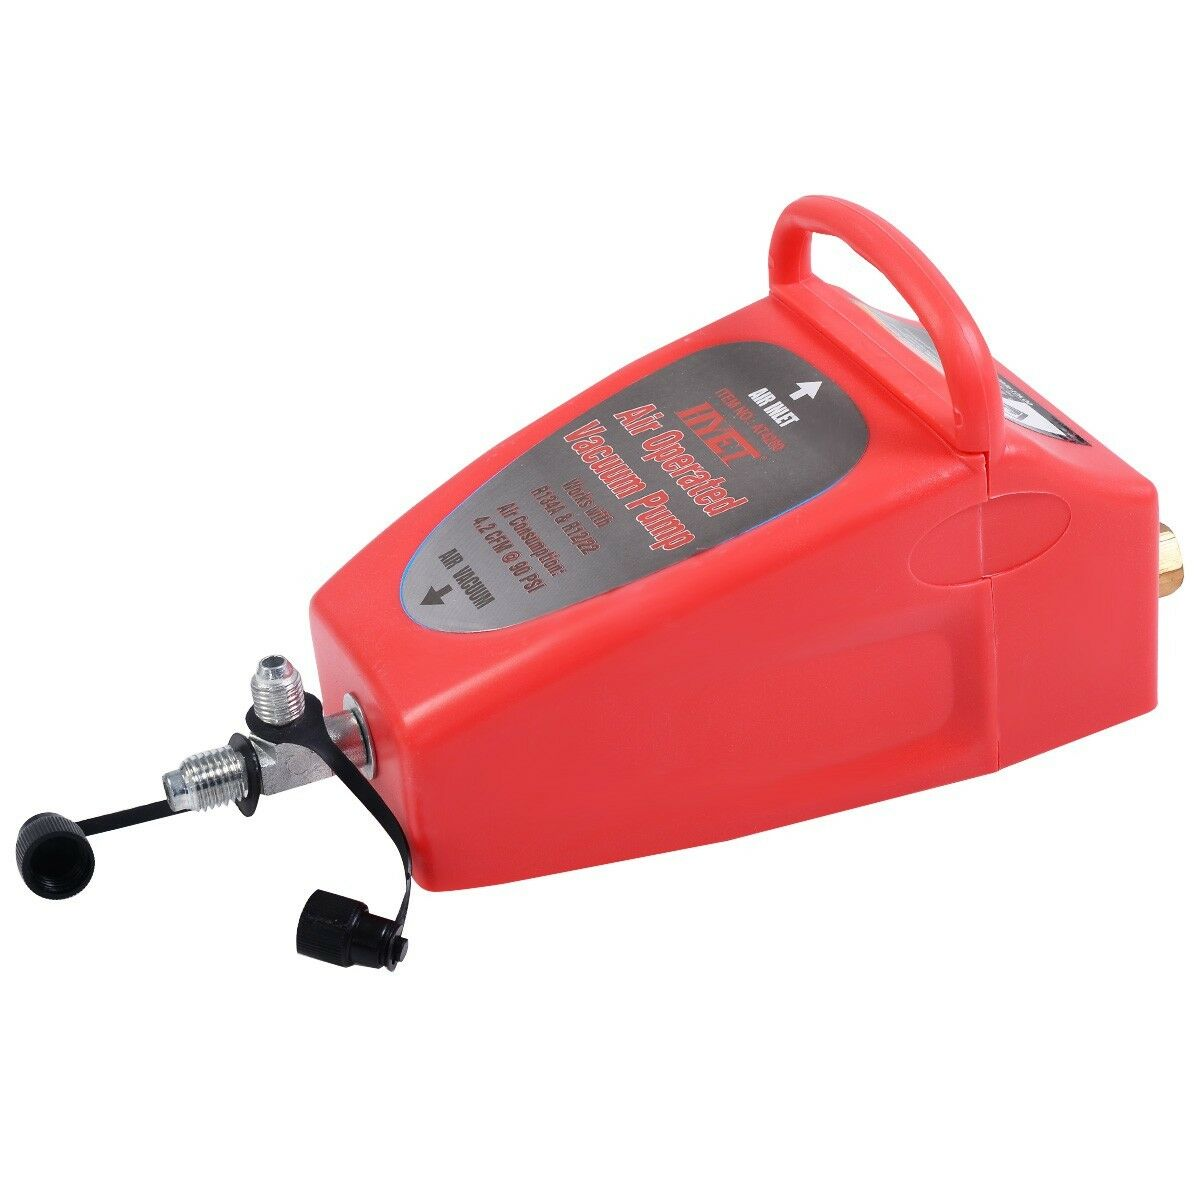 Auto Pneumatic 4.2CFM Air Operated Vacuum Pump A/C Air Conditioning System Tool 4